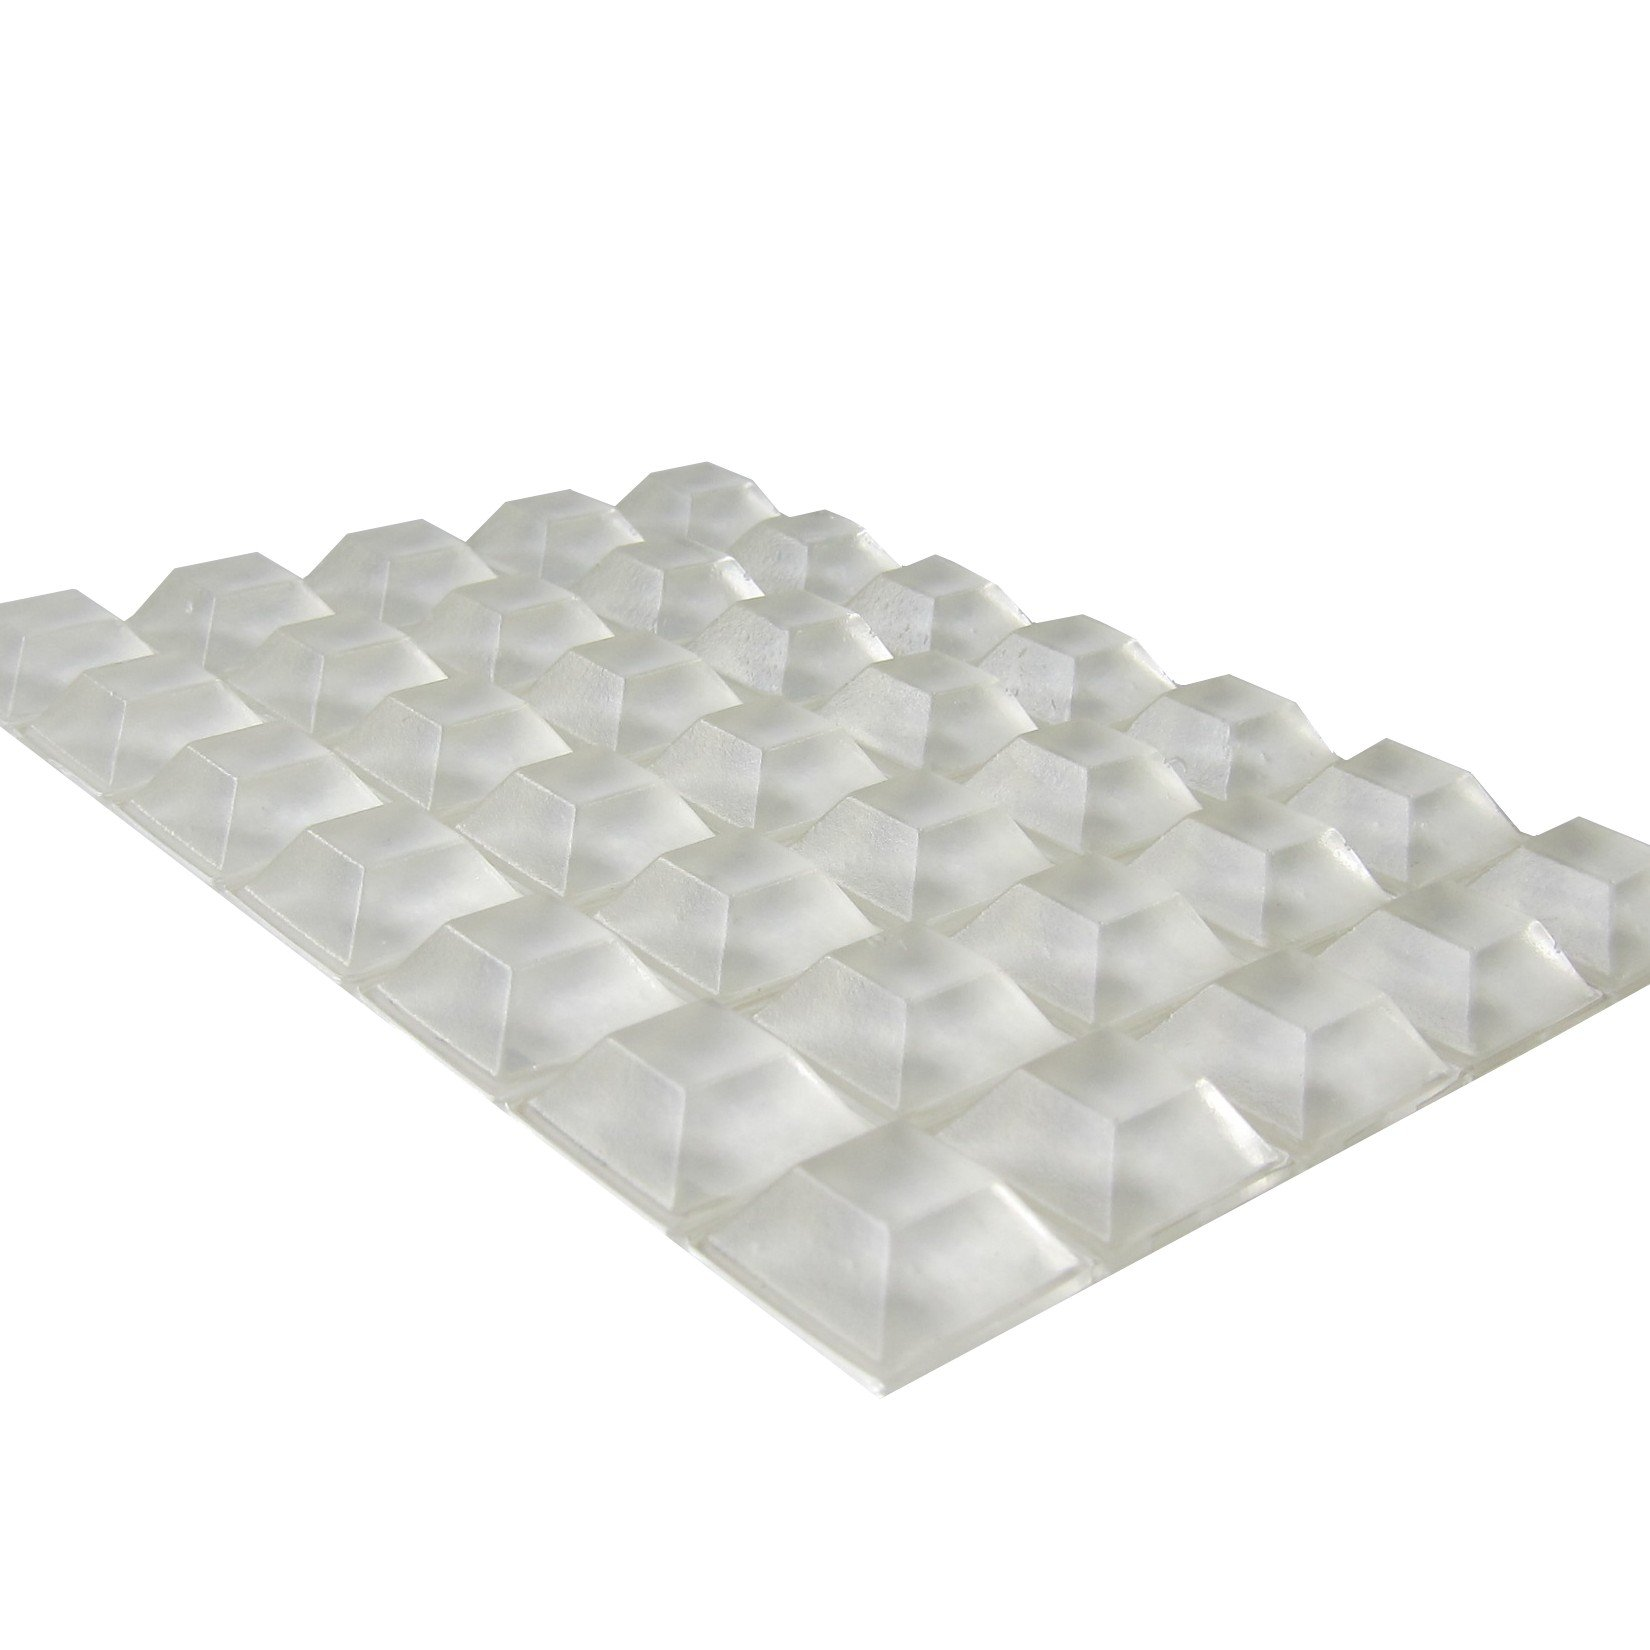 Clear Rubber Feet Adhesive Rubber Bumper, Tall Square Self Stick Bumpers, Clear Bumper Pads - 56 Pack